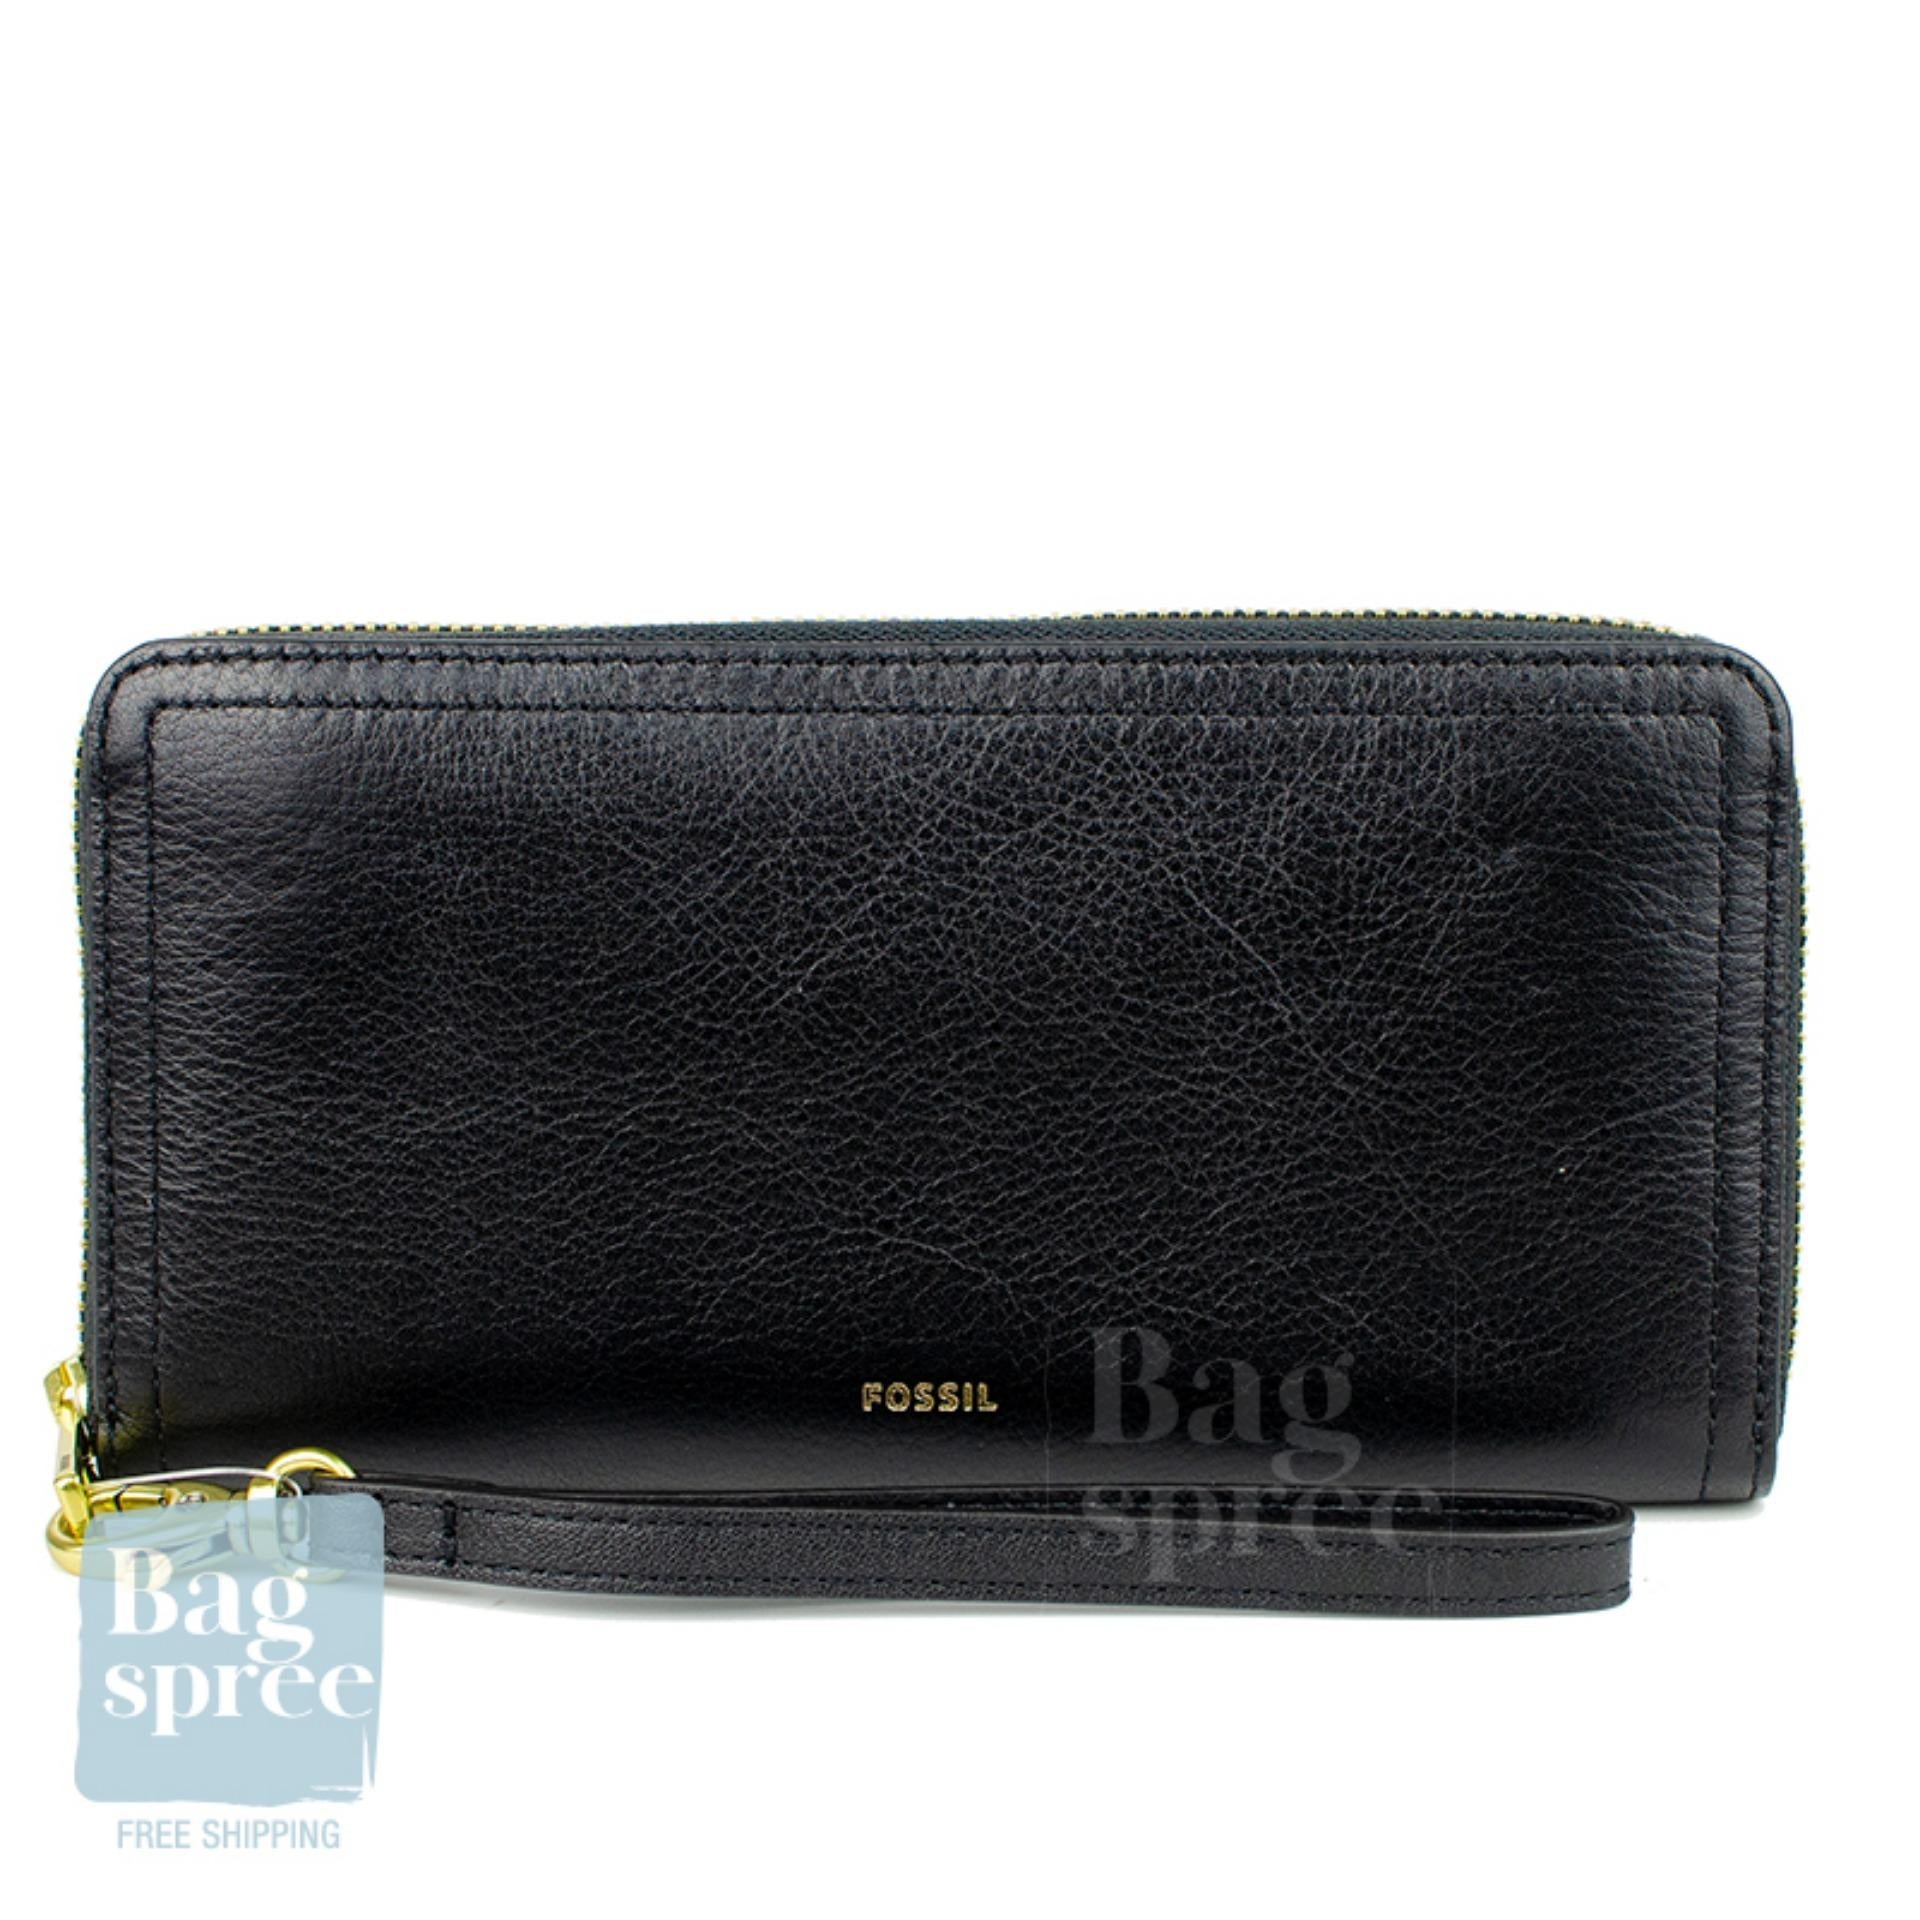 Fossil Logan RFID Zip Around Clutch Leather Wallet Black SL7831001